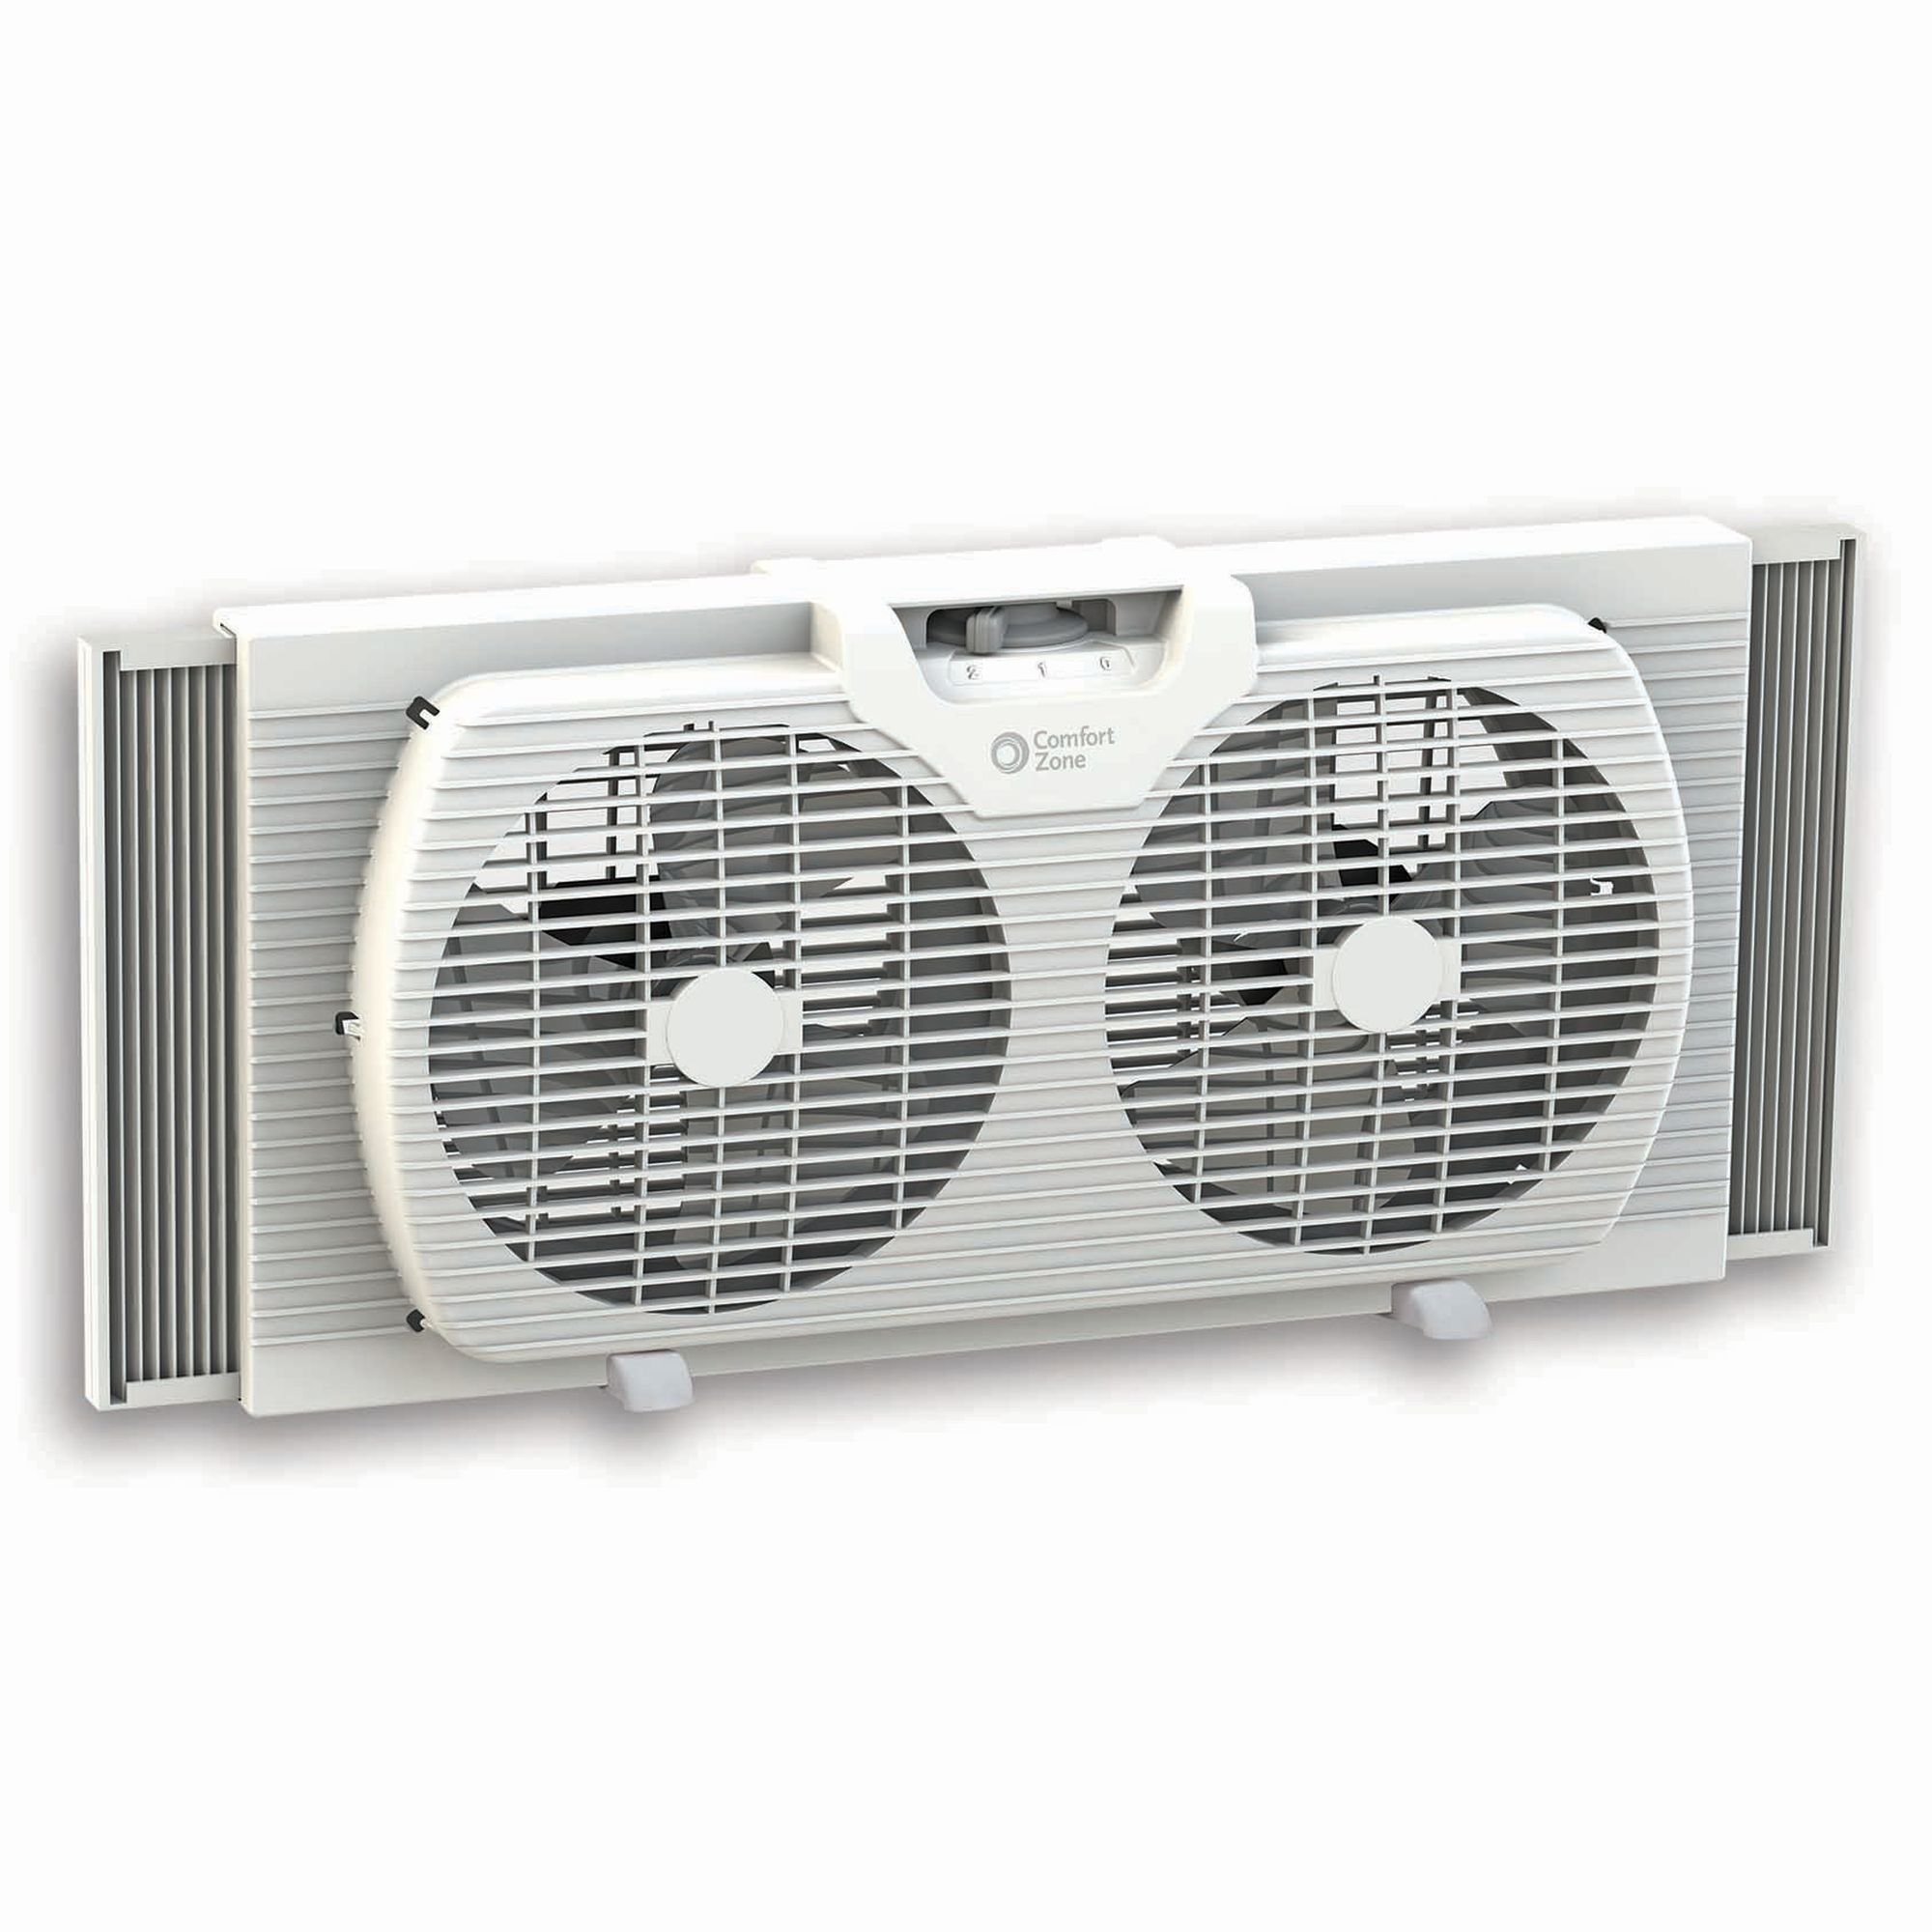 Comfort Zone CZ319WT 9-inch Twin Window Fan with Reversible Airflow Control, Auto-Locking Expanders and 2-Speed Fan Switch by CCC COMFORT ZONE